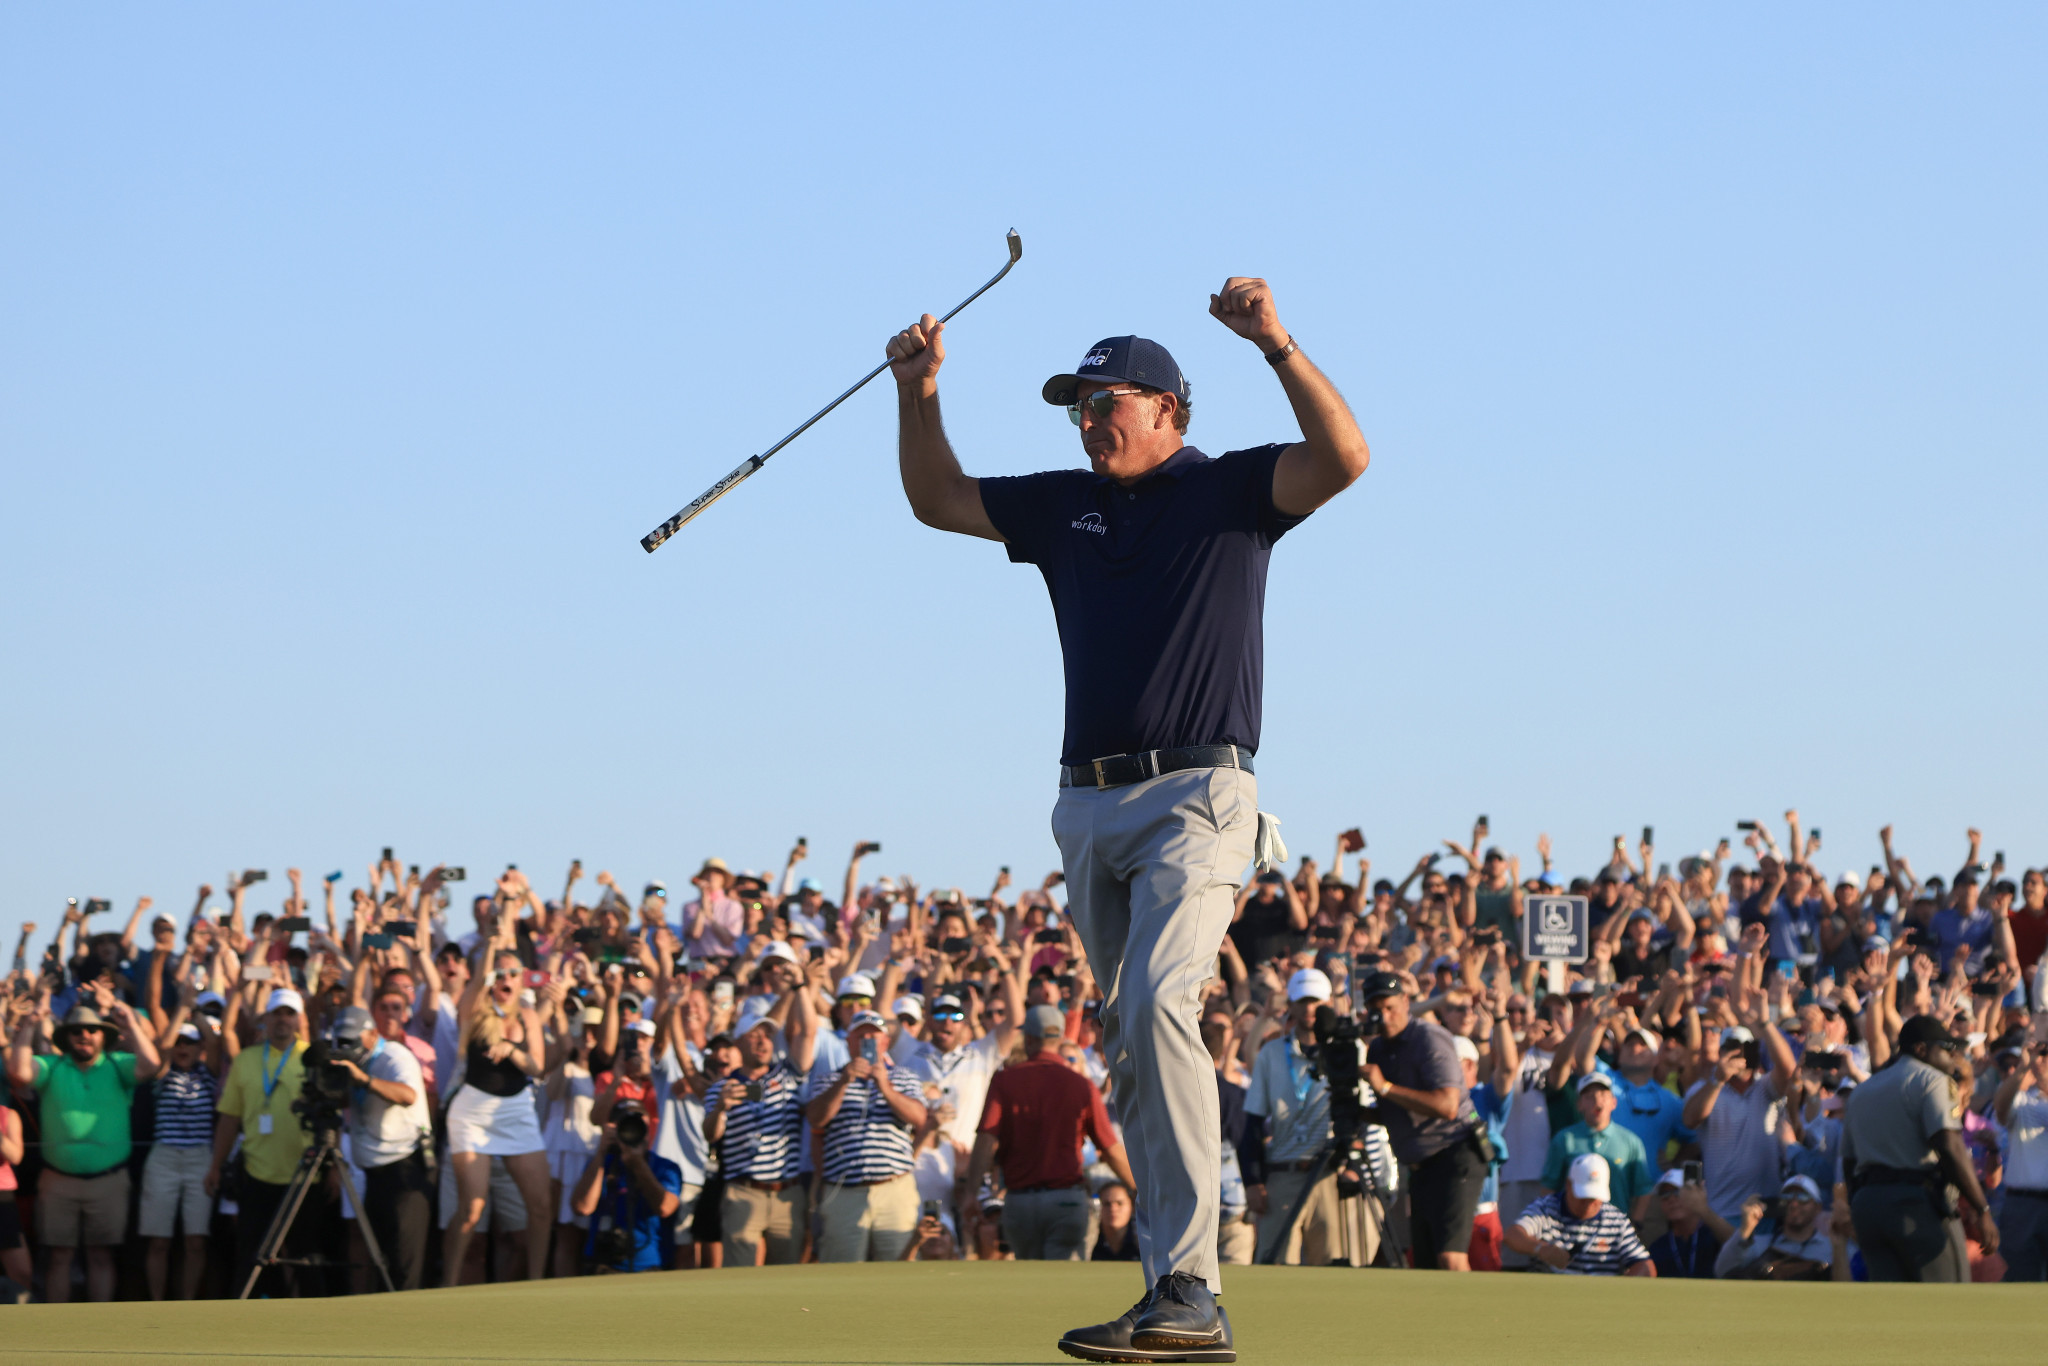 Cool-headed Mickelson wins PGA Championship to become golf's oldest major champion